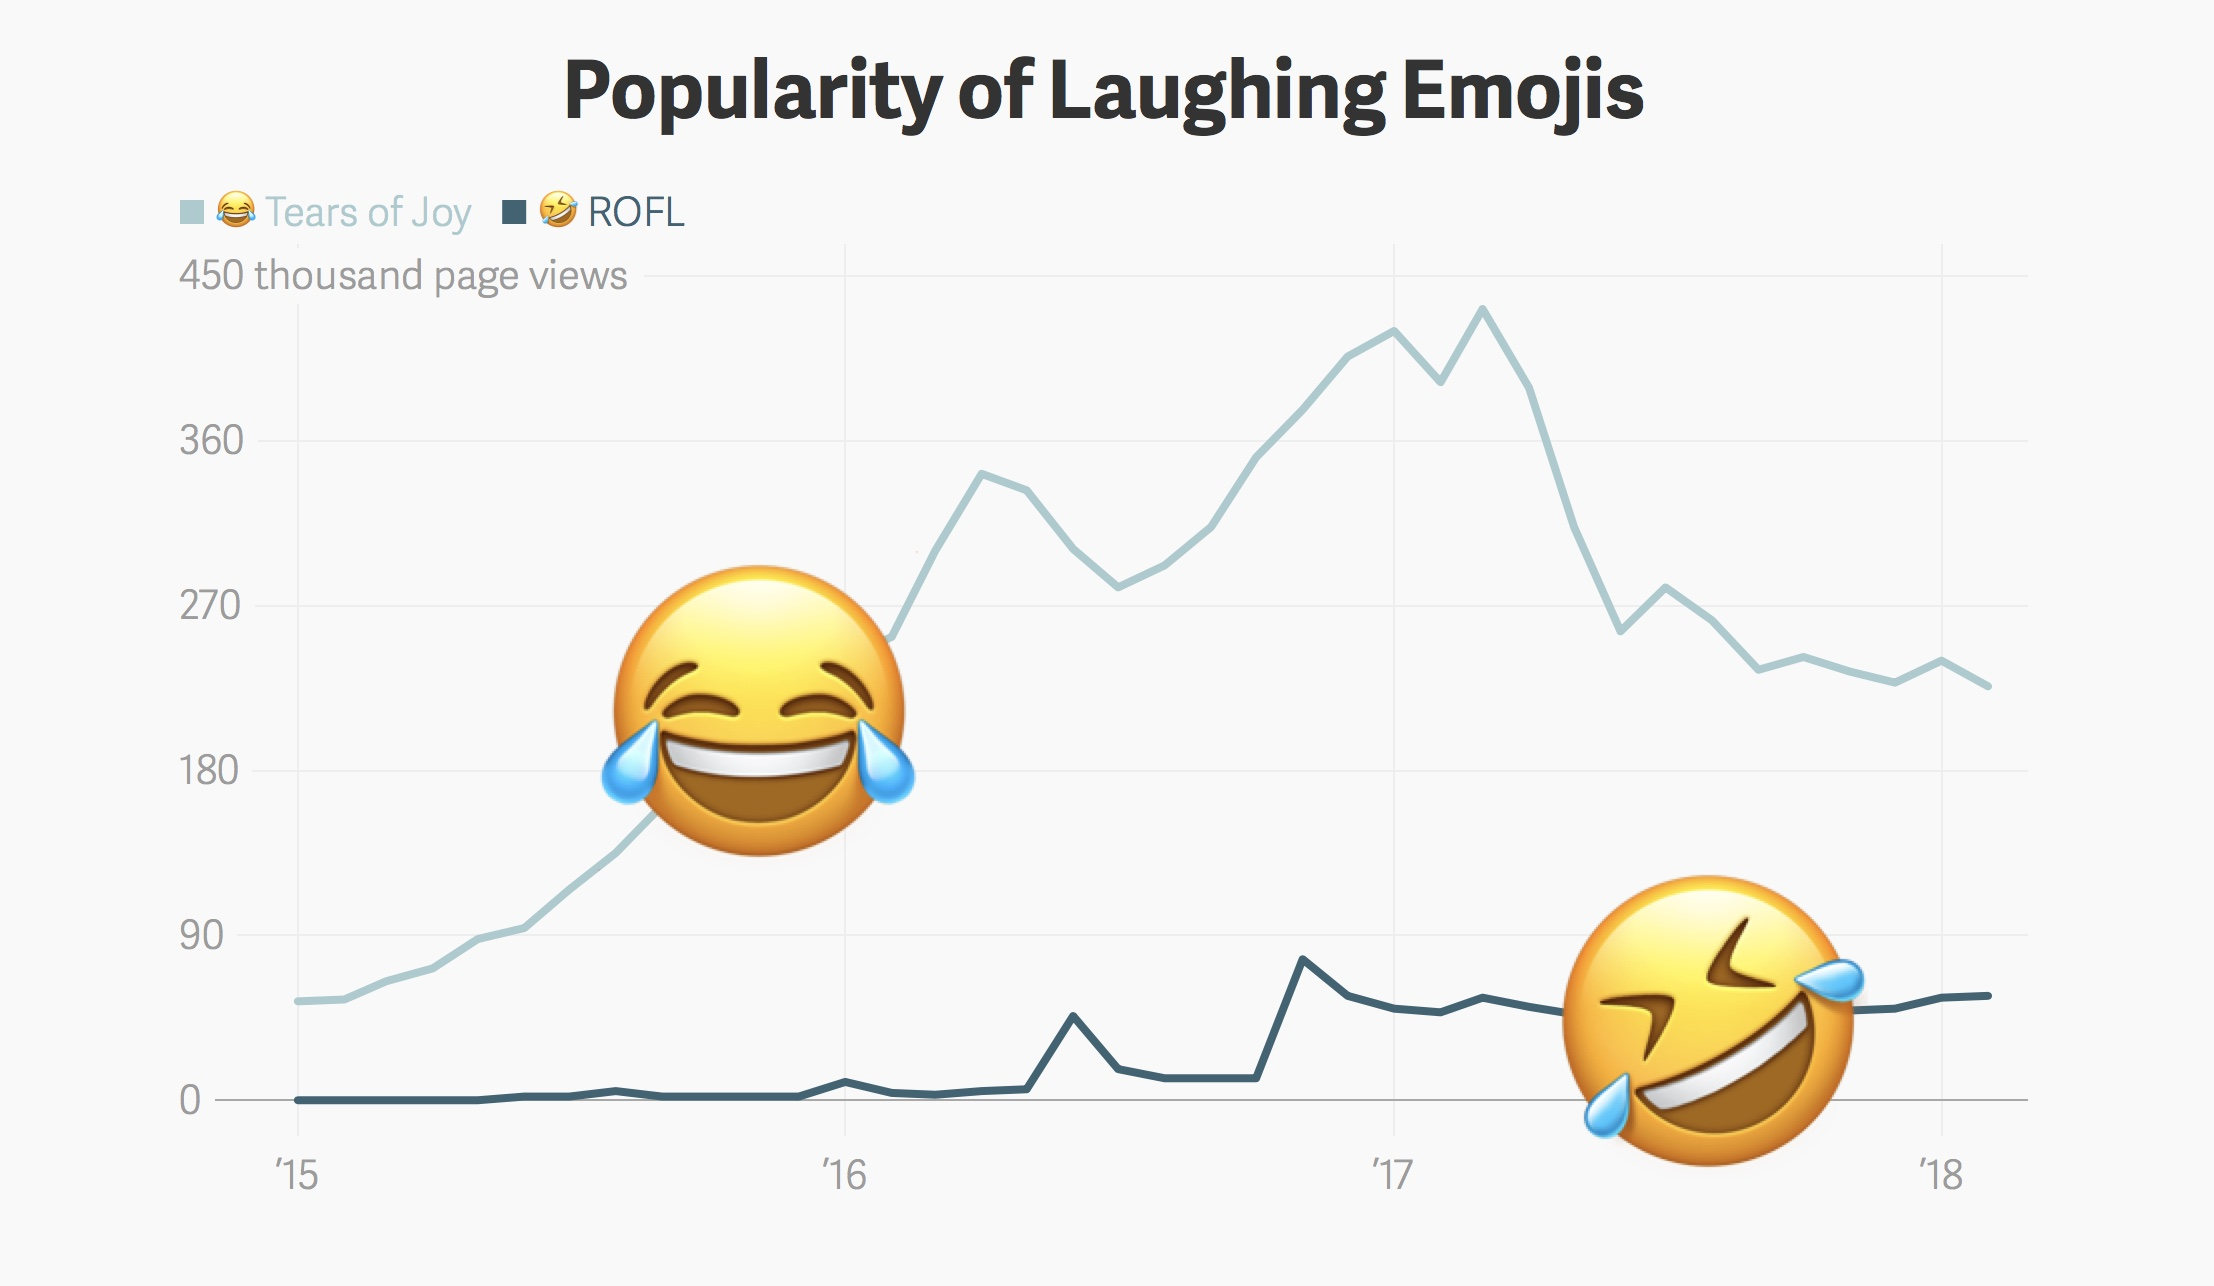 popularity-of-laughing-emojis-emojipedia